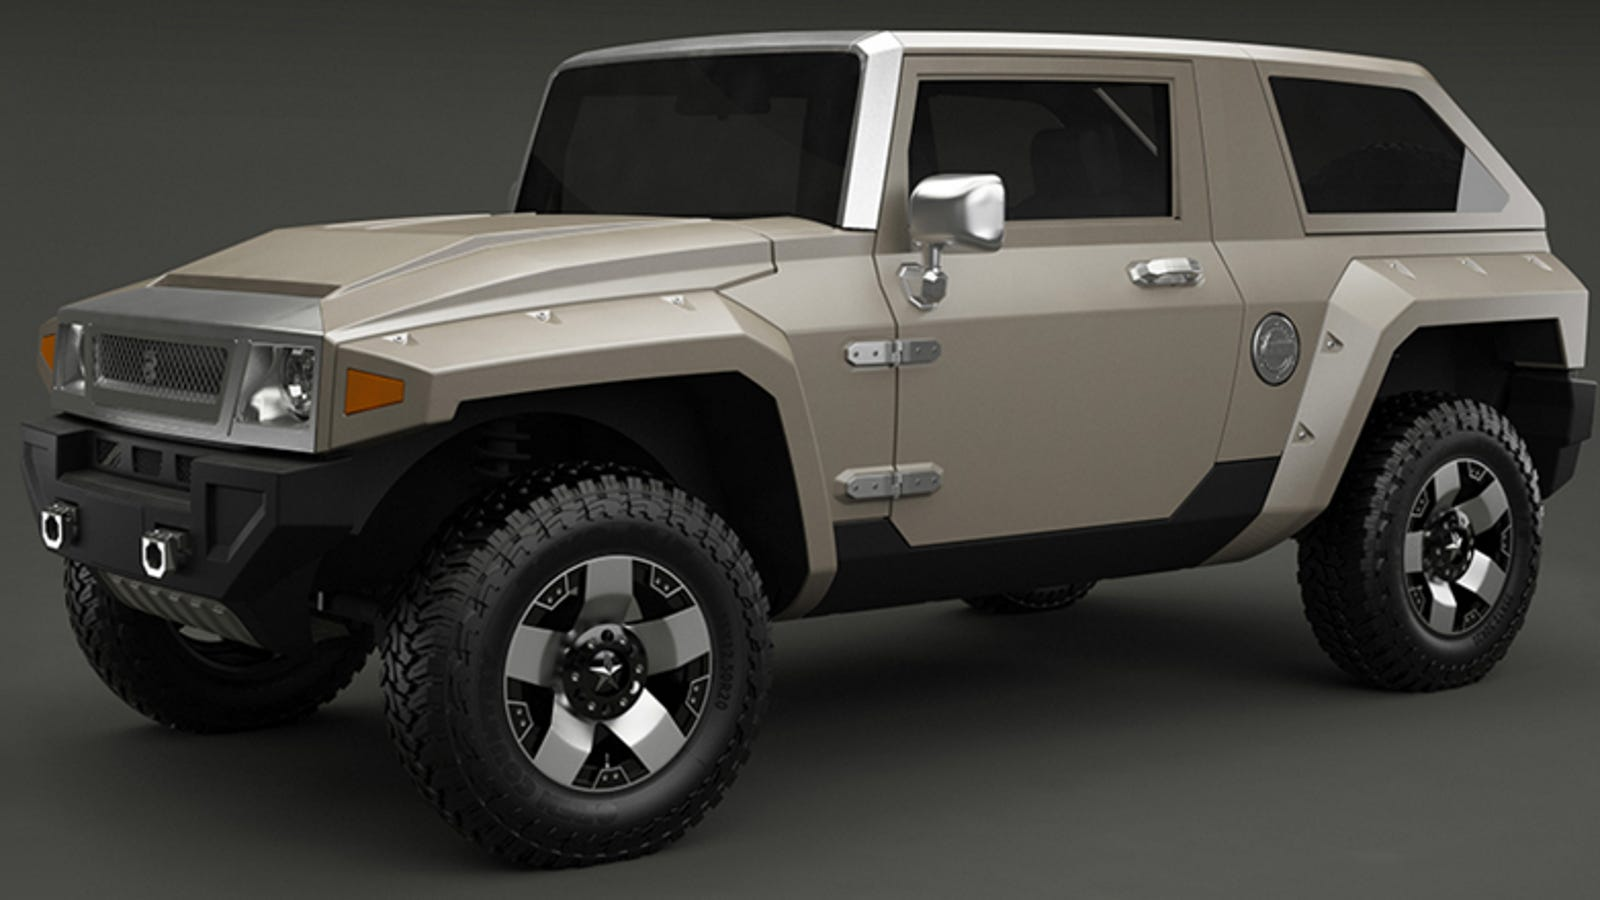 You Can Buy The Futuristic Hummer Hx As A Jeep Wrangler